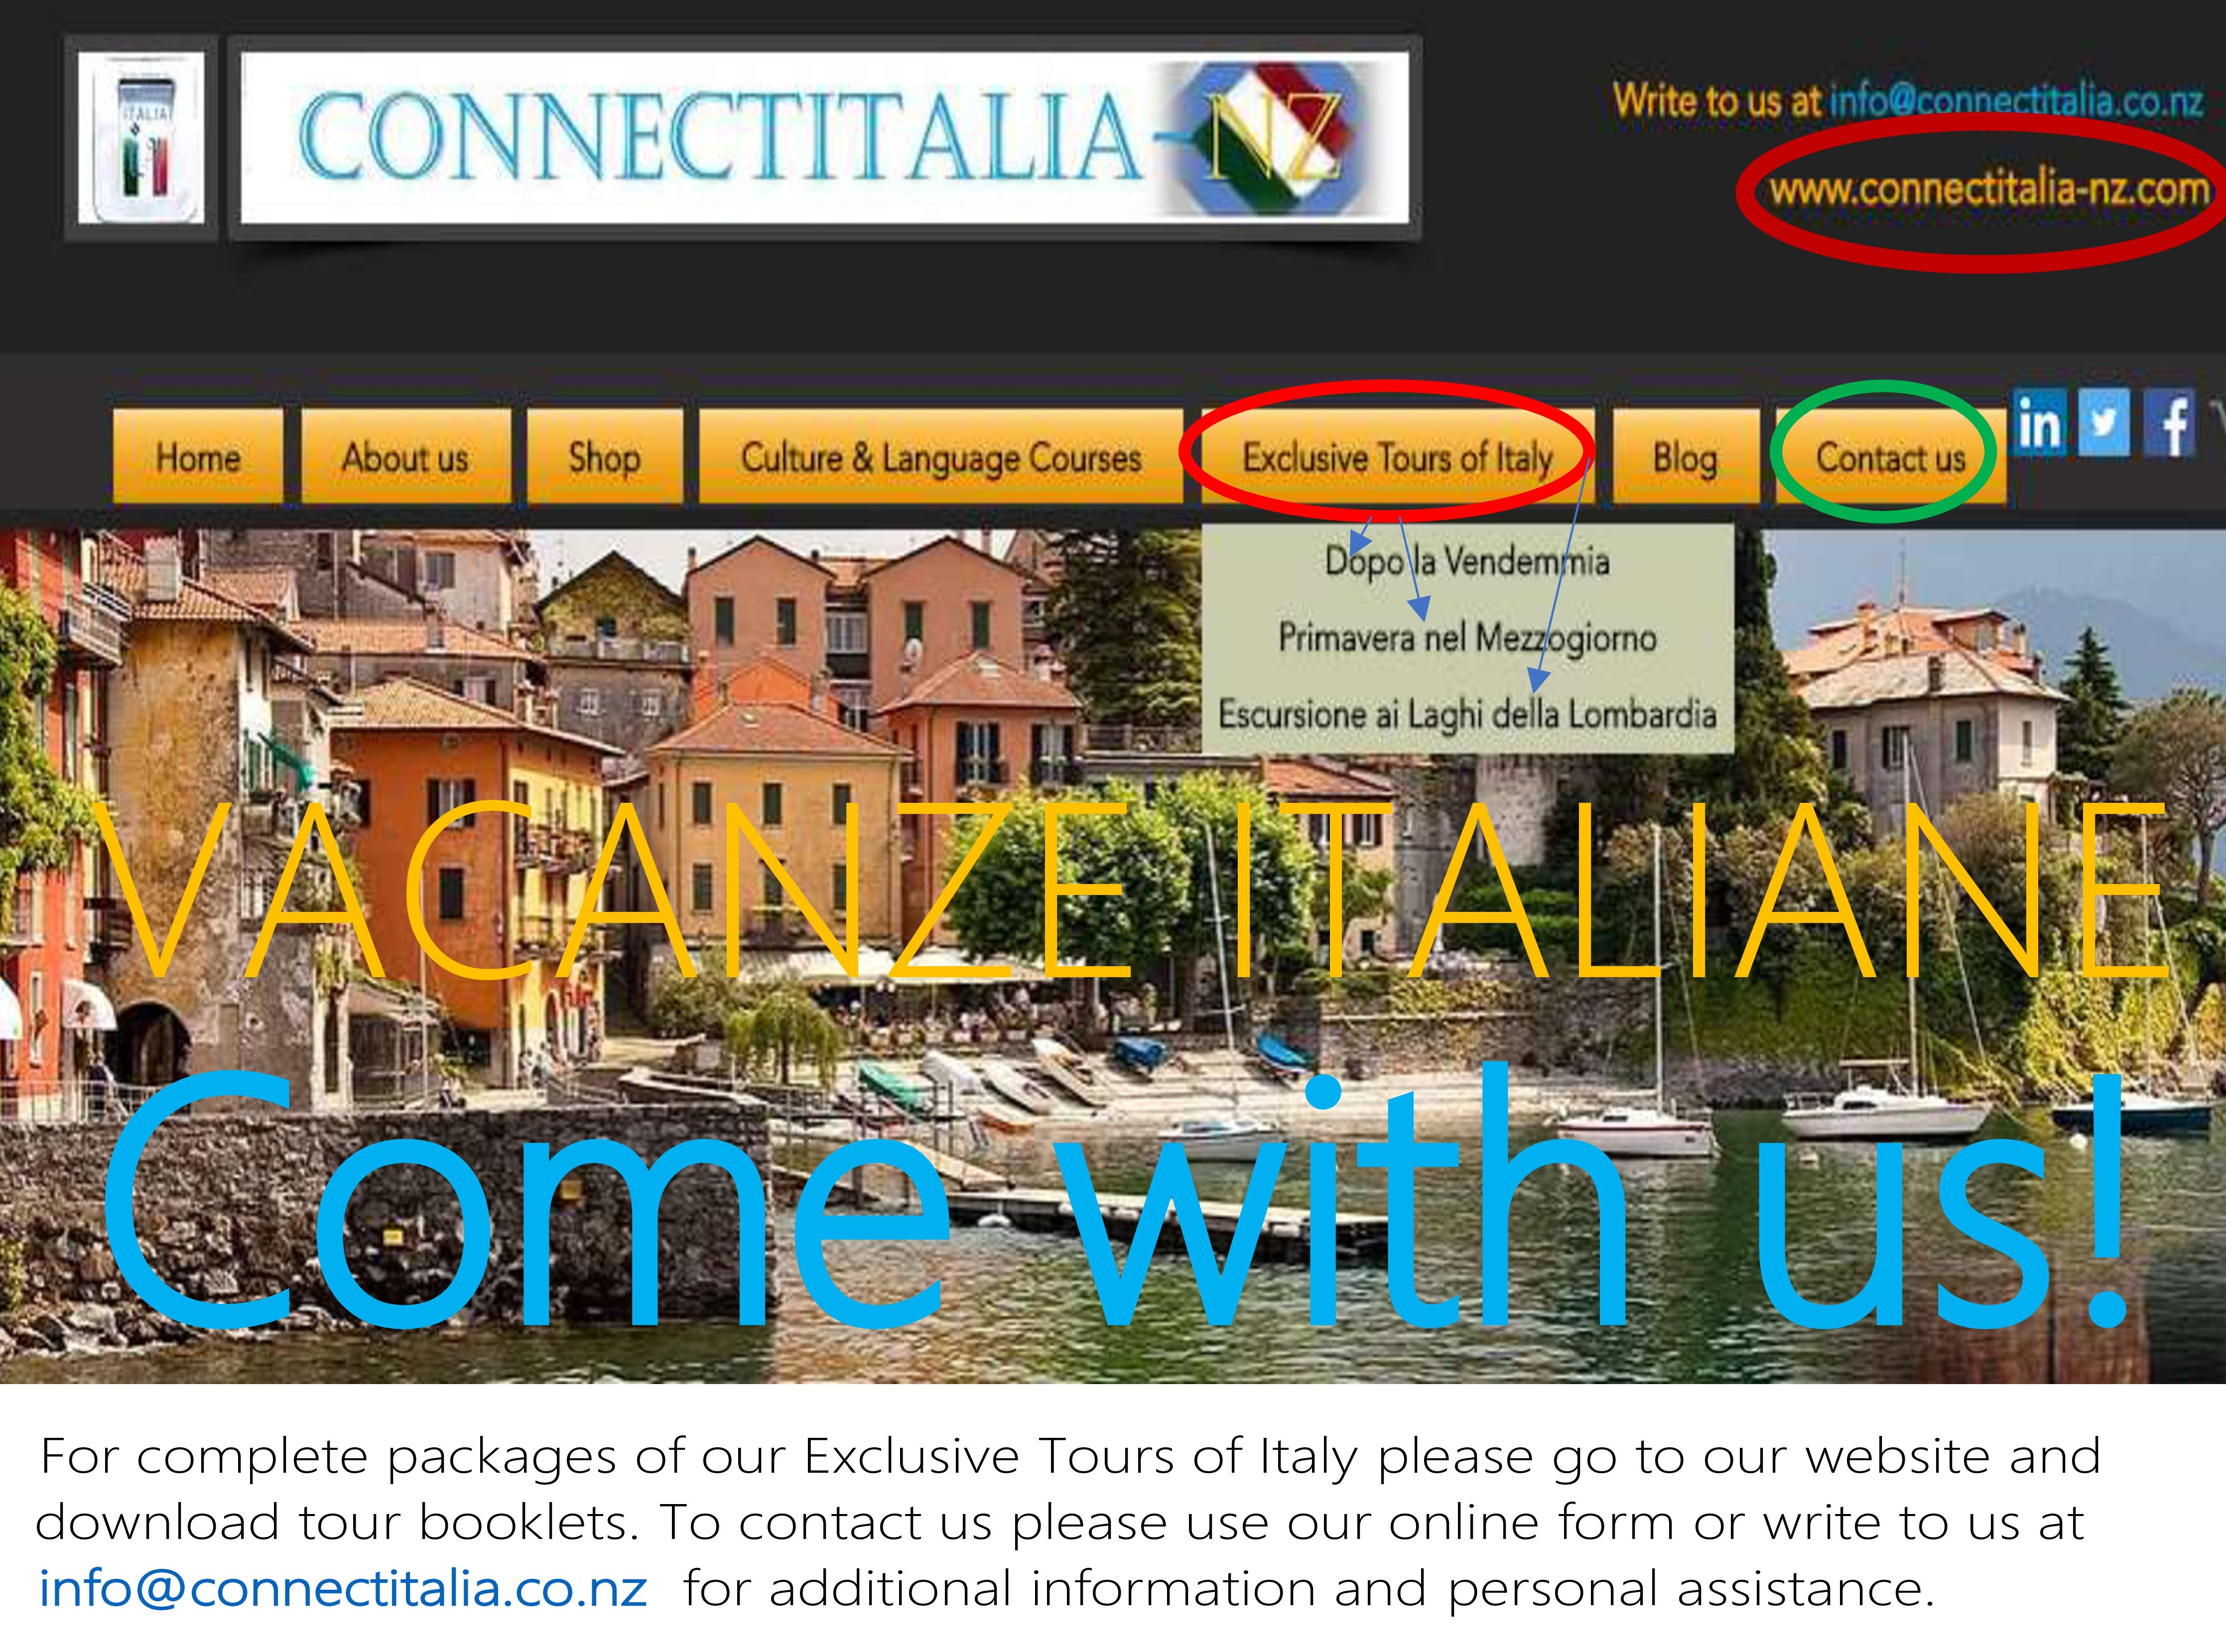 Connect Italia NZ - Exclusive tours of Italy